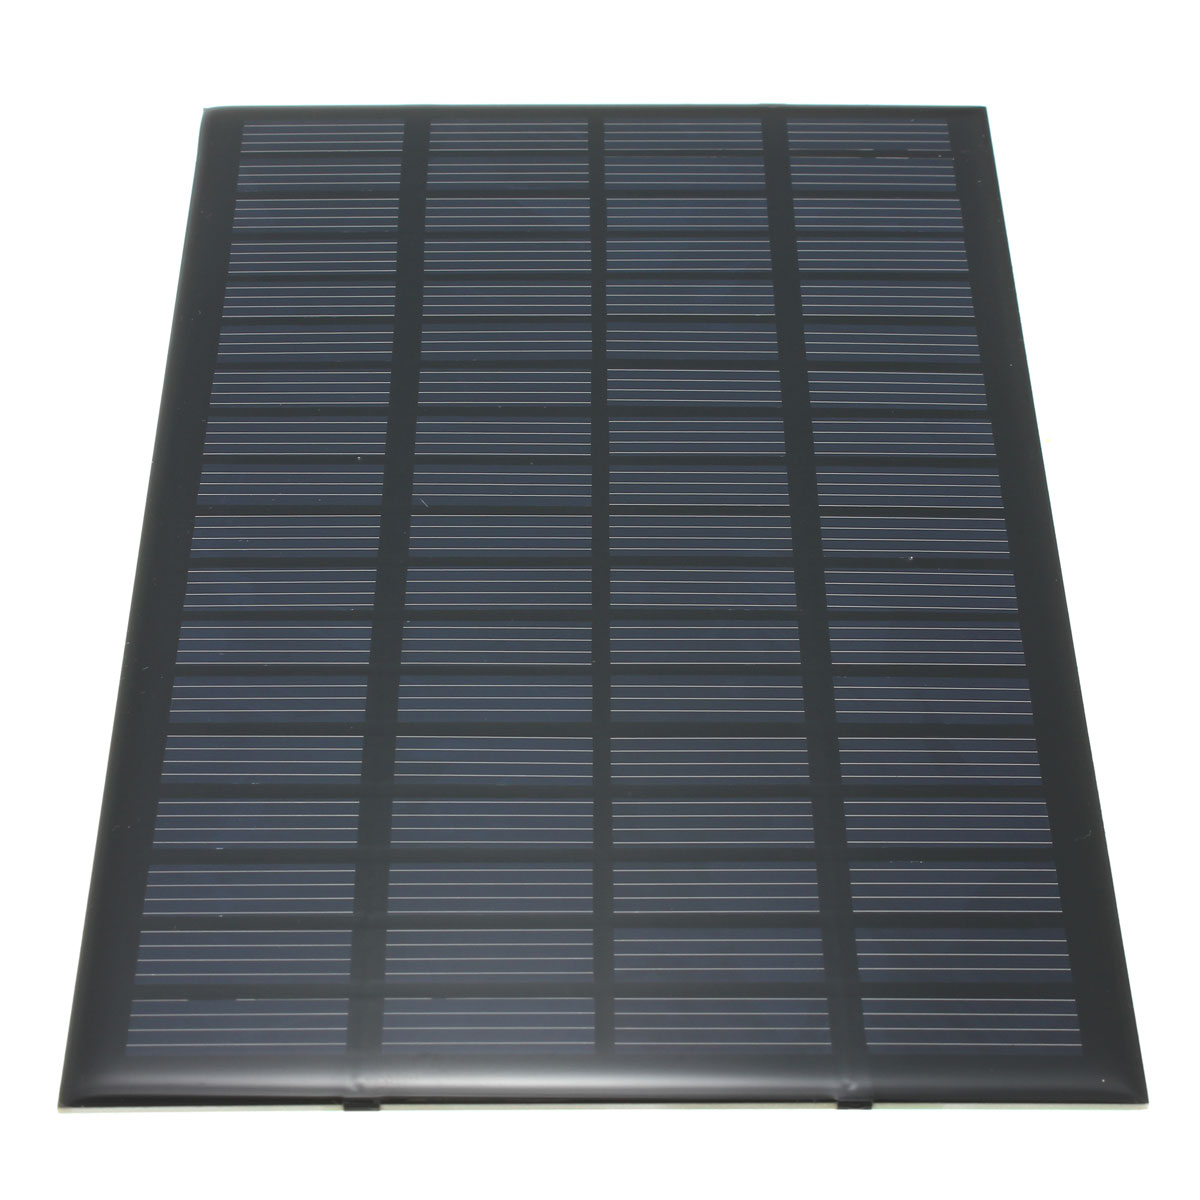 LEORY Hot Sale 18V 2.5W Polycrystalline Stored Energy Power Solar Panel Module System Solar Cells Charger 19.4x12x0.3cm